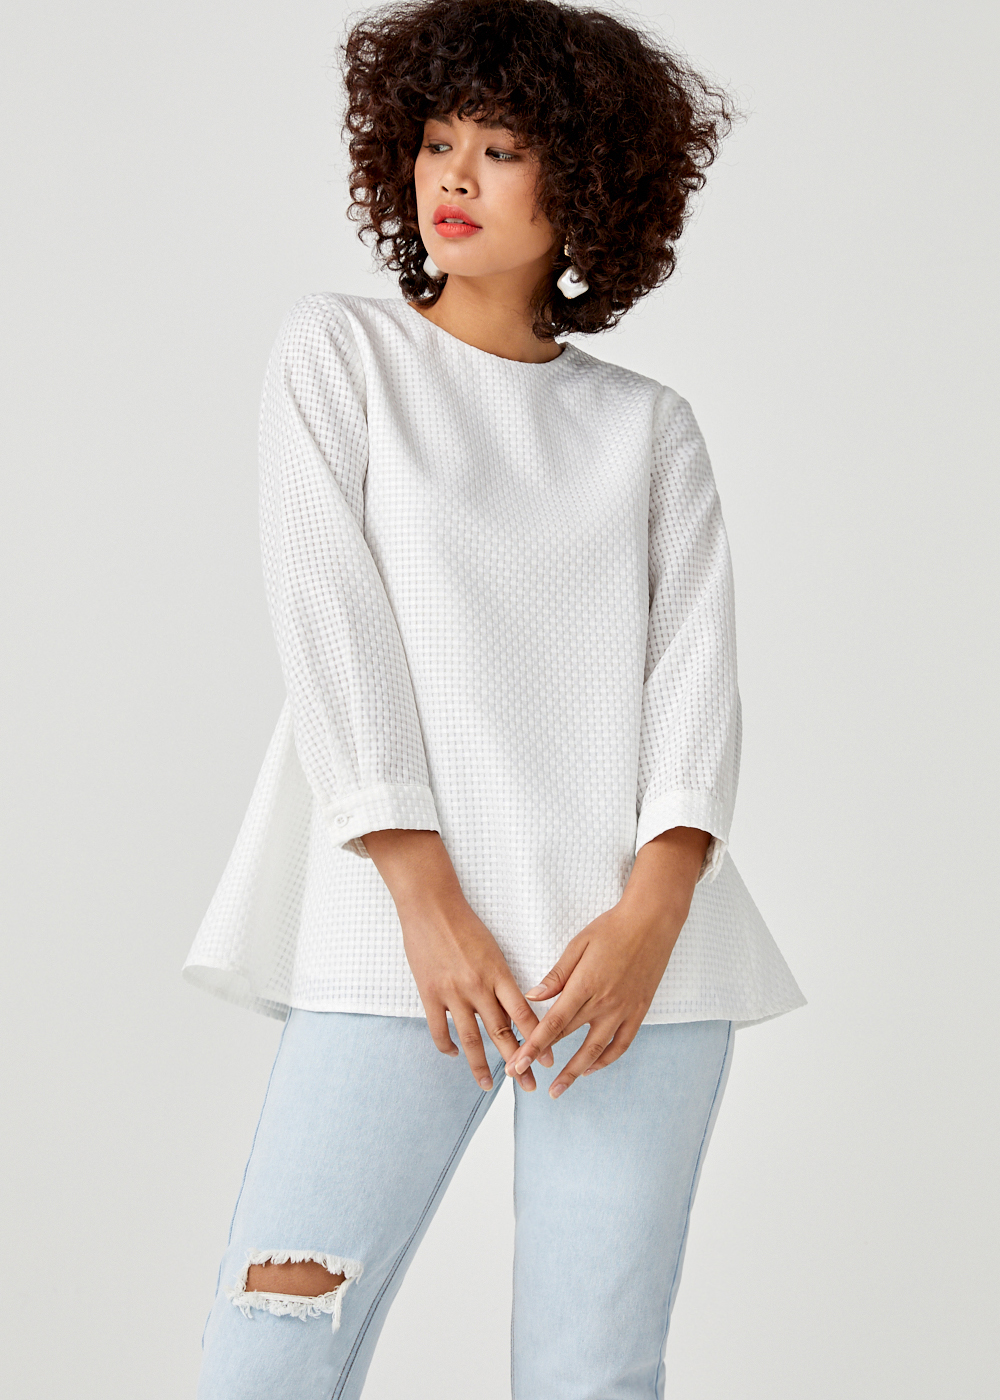 Alondra Relaxed Fit Puff Sleeve Top